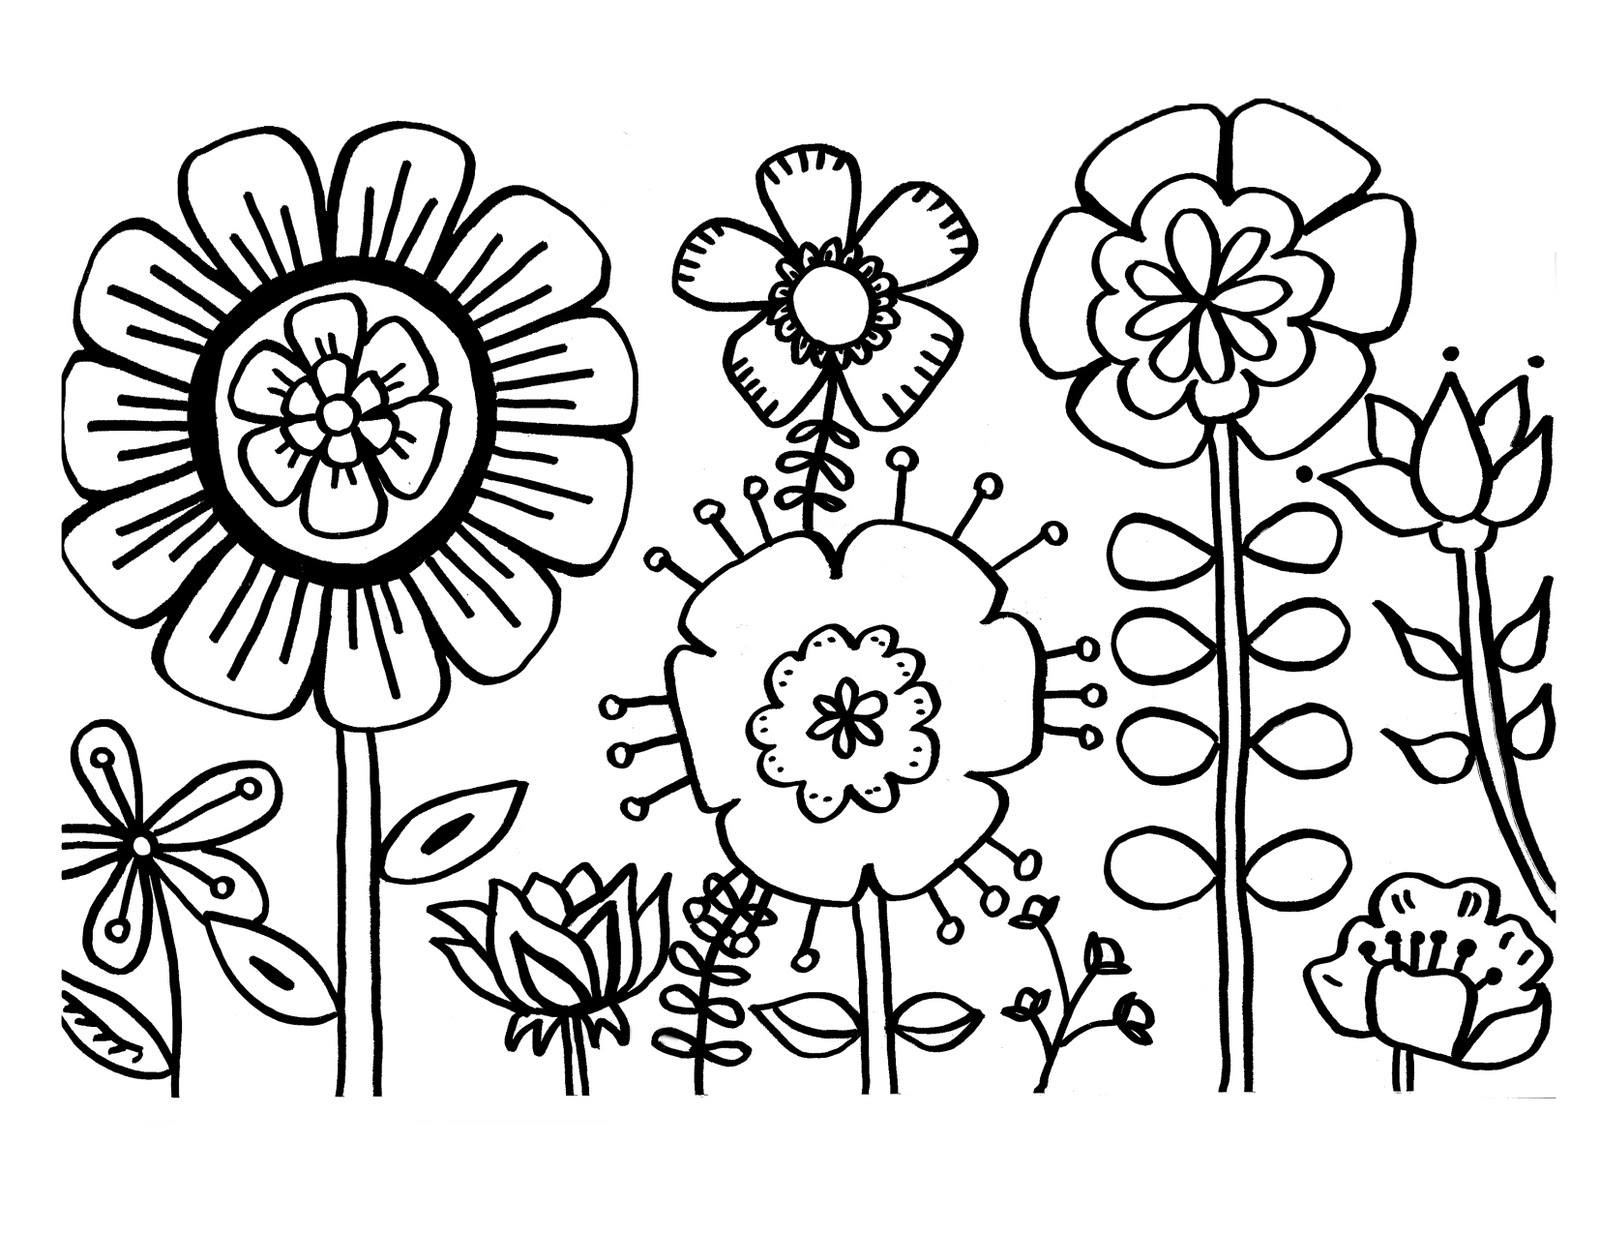 flower printable coloring sheets free printable flower coloring pages for kids best printable sheets flower coloring